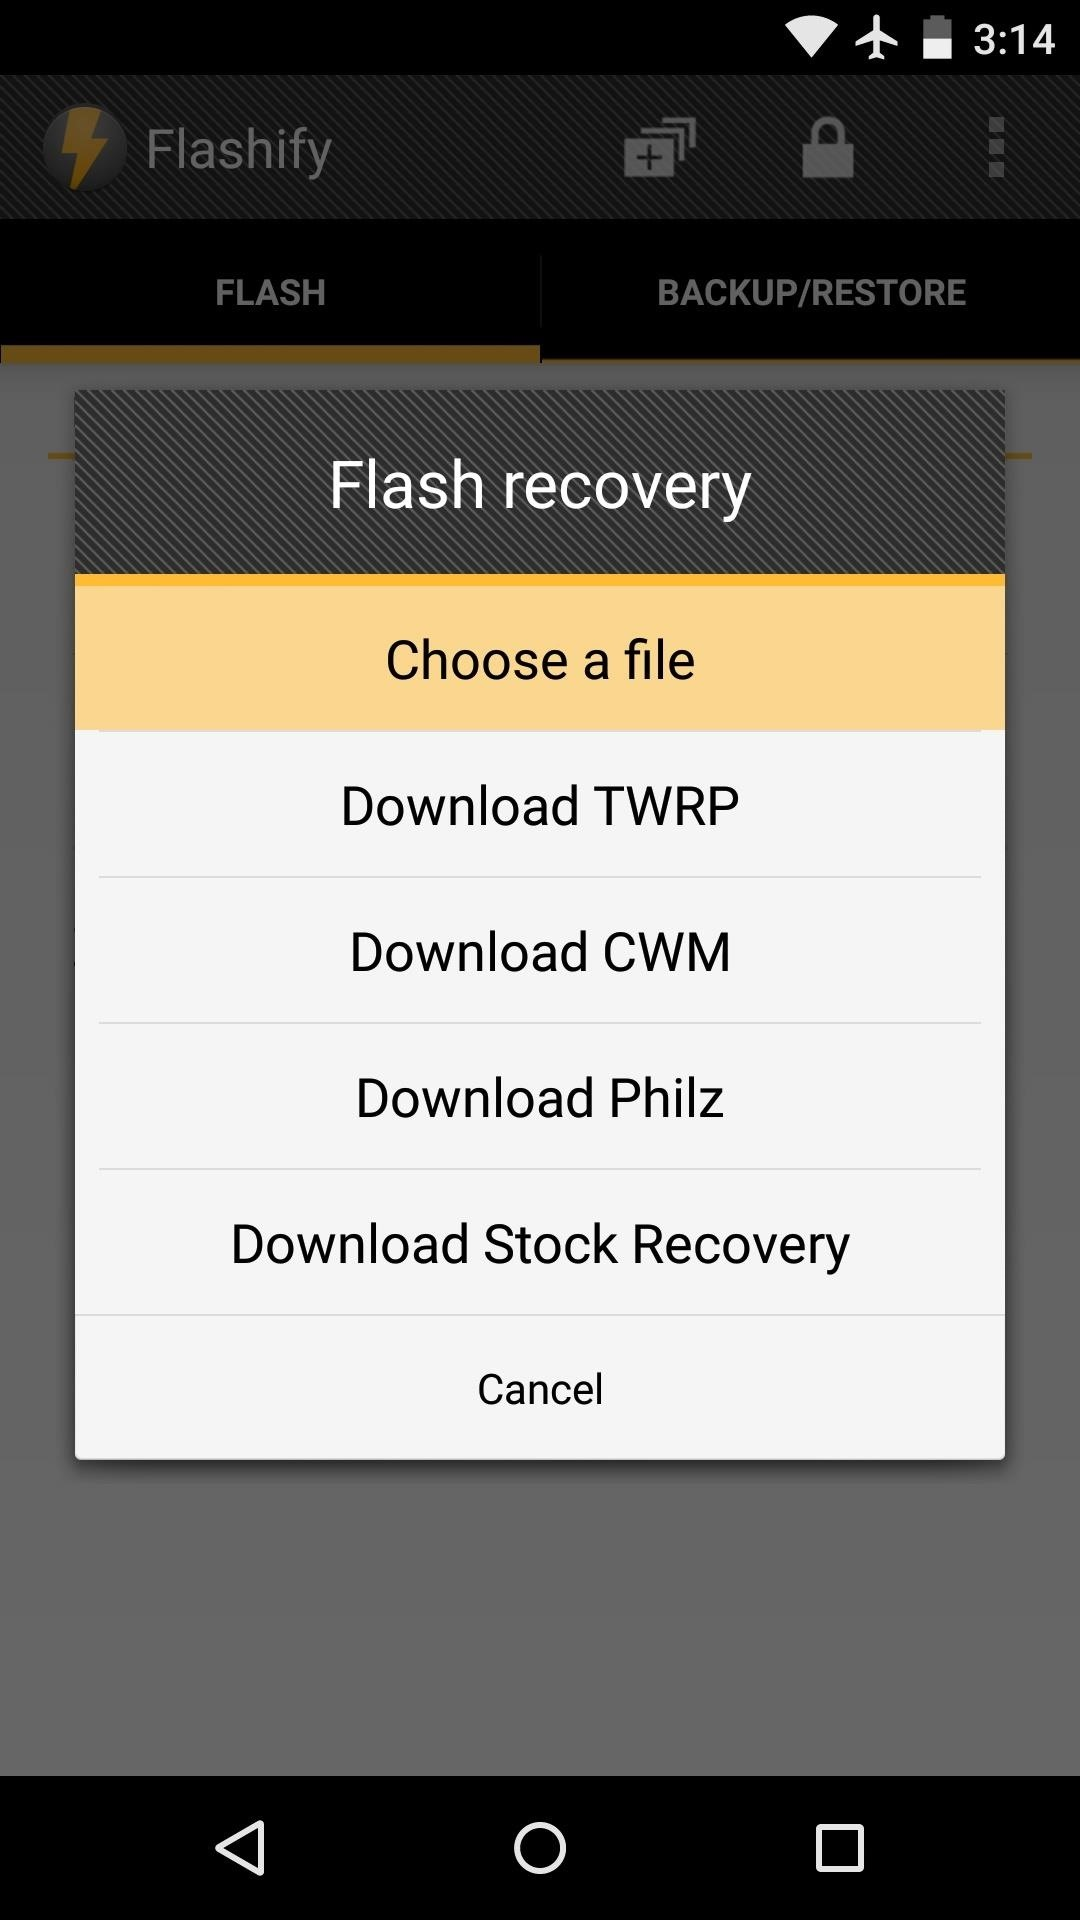 Update TWRP Recovery with a Material Design Theme on Your Nexus 5